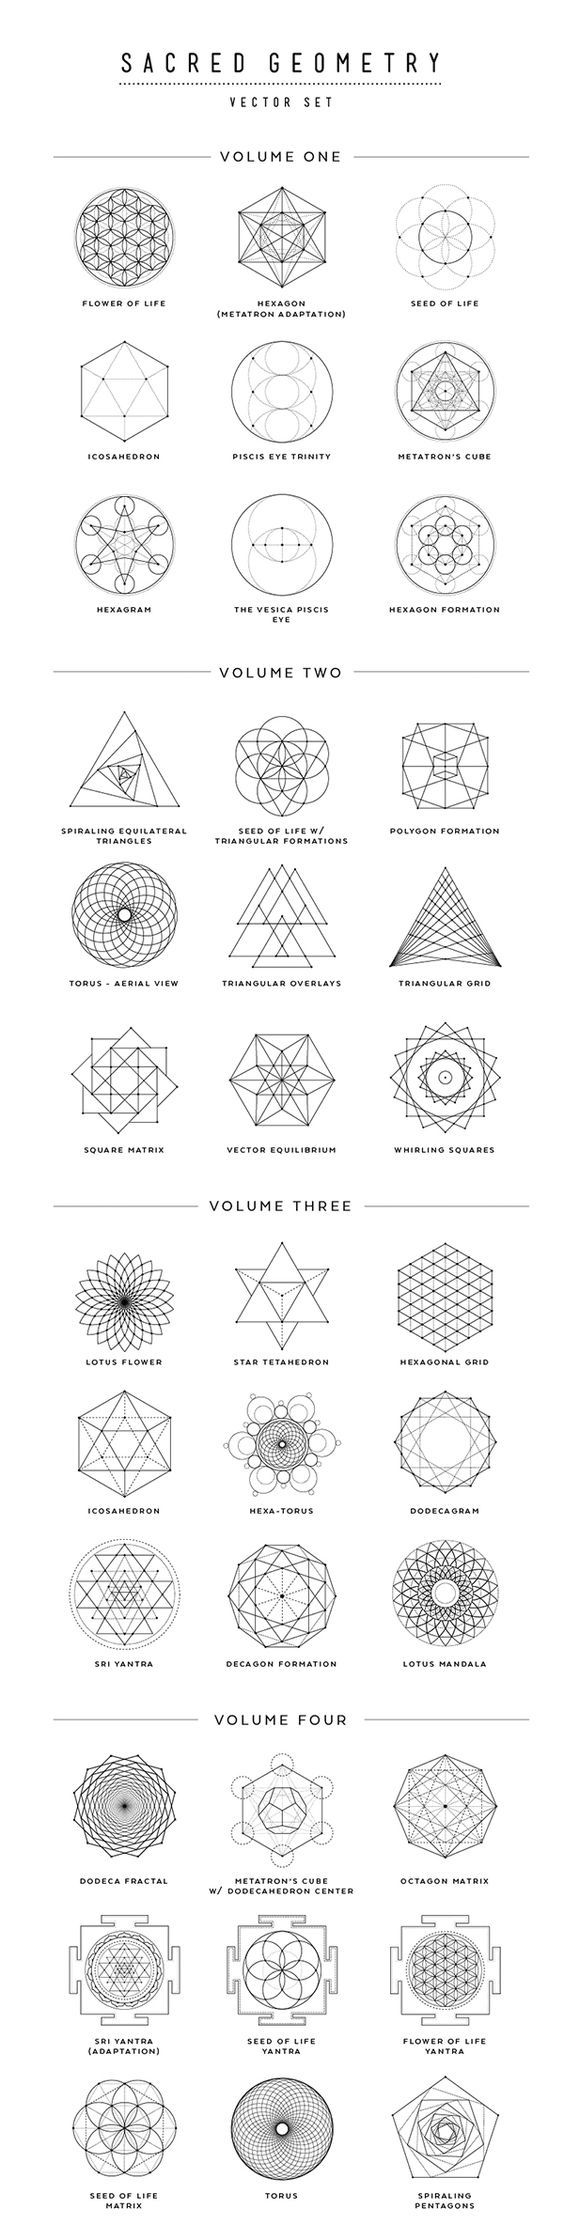 Pin by christie wright on eclectic selection pinterest tattoo i created this pdf guide and short video to go over a few sacred geometry symbols their names and meanings learn more and how to create your own sacred biocorpaavc Gallery